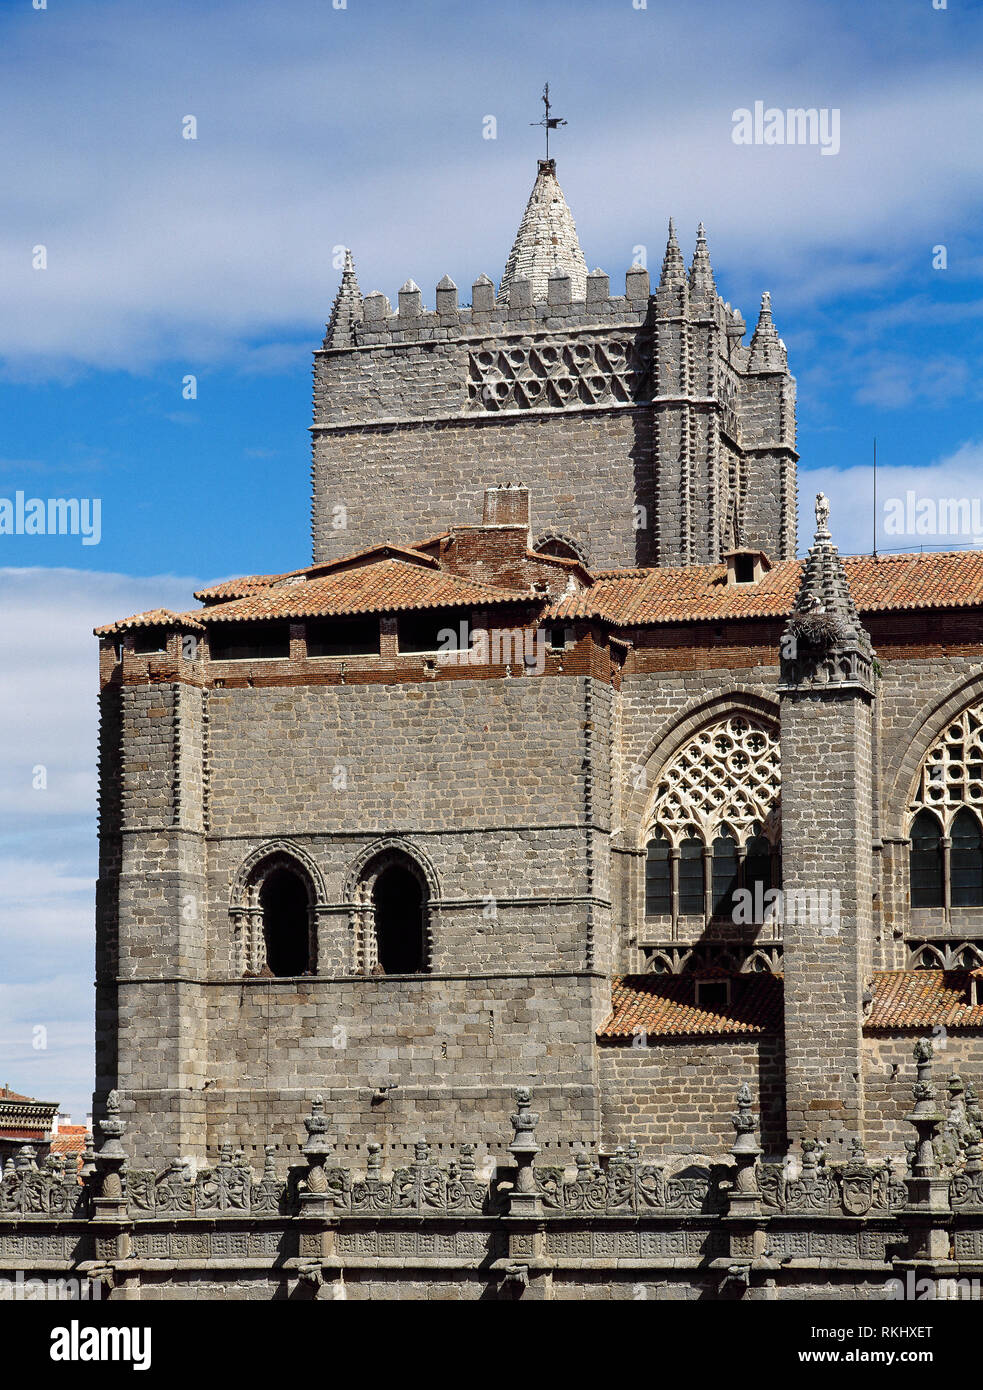 Spain, Castile and Leon, Avila. Cathedral of St. Salvador. Catholic church. It was started in the 12th century in Romanesque style and concluded in the 14th century in Gothic style. Architectural detail of the exterior. - Stock Image